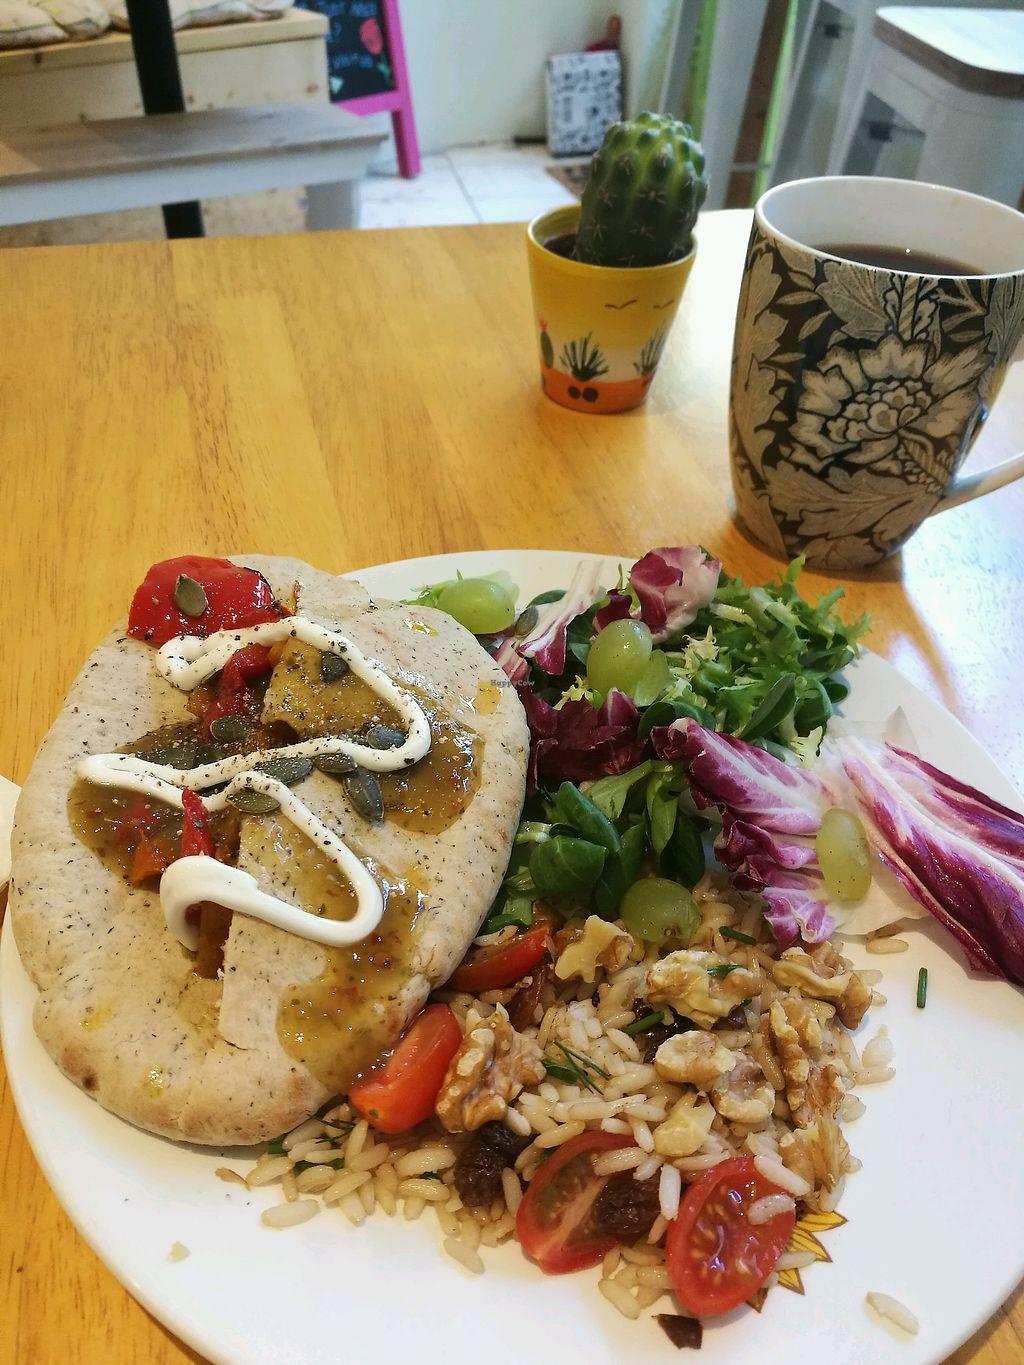 """Photo of Purity Petal Cafe  by <a href=""""/members/profile/JemmaStovell"""">JemmaStovell</a> <br/>Butternut Squash Pitta <br/> April 20, 2018  - <a href='/contact/abuse/image/101172/388399'>Report</a>"""